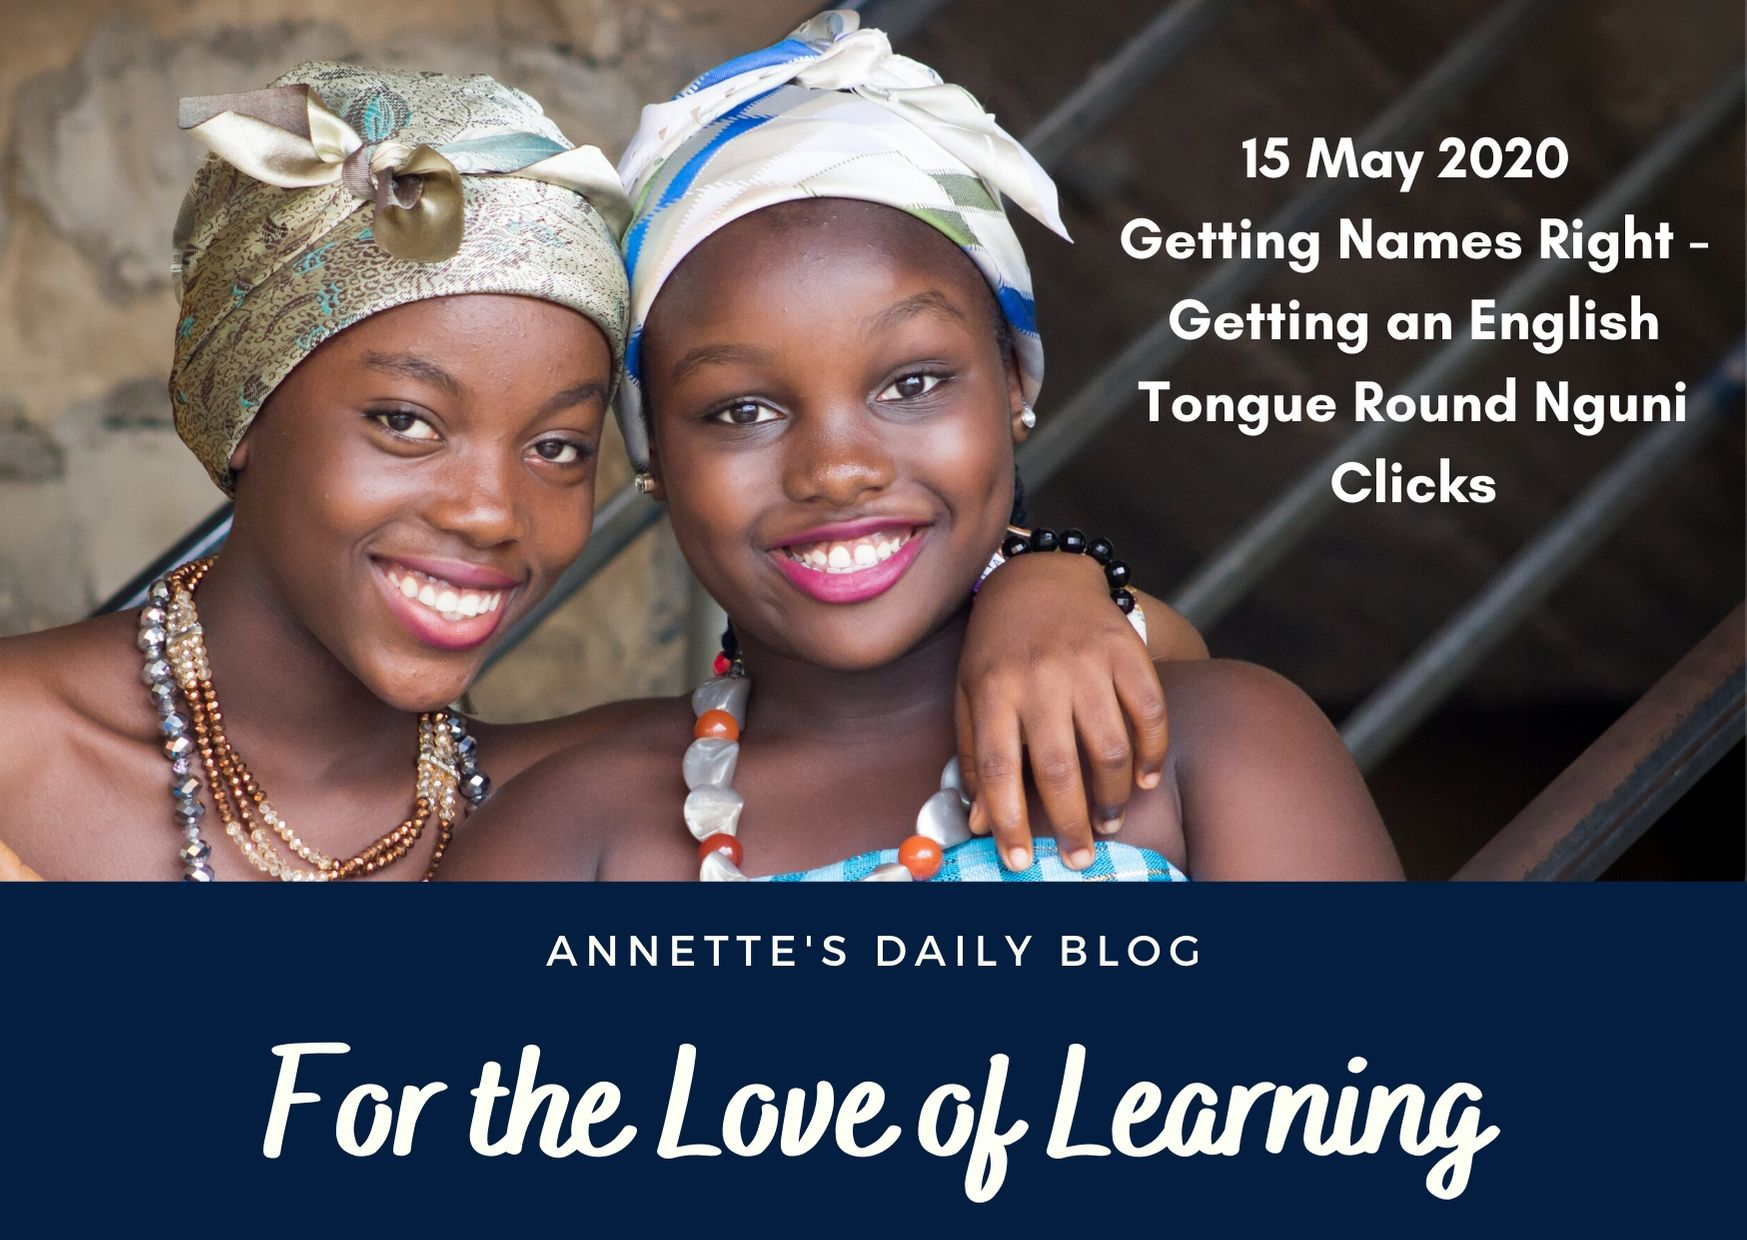 For the Love of Learning, 15 May 2020 : Getting Names Right – Getting an English Tongue Round Nguni Clicks